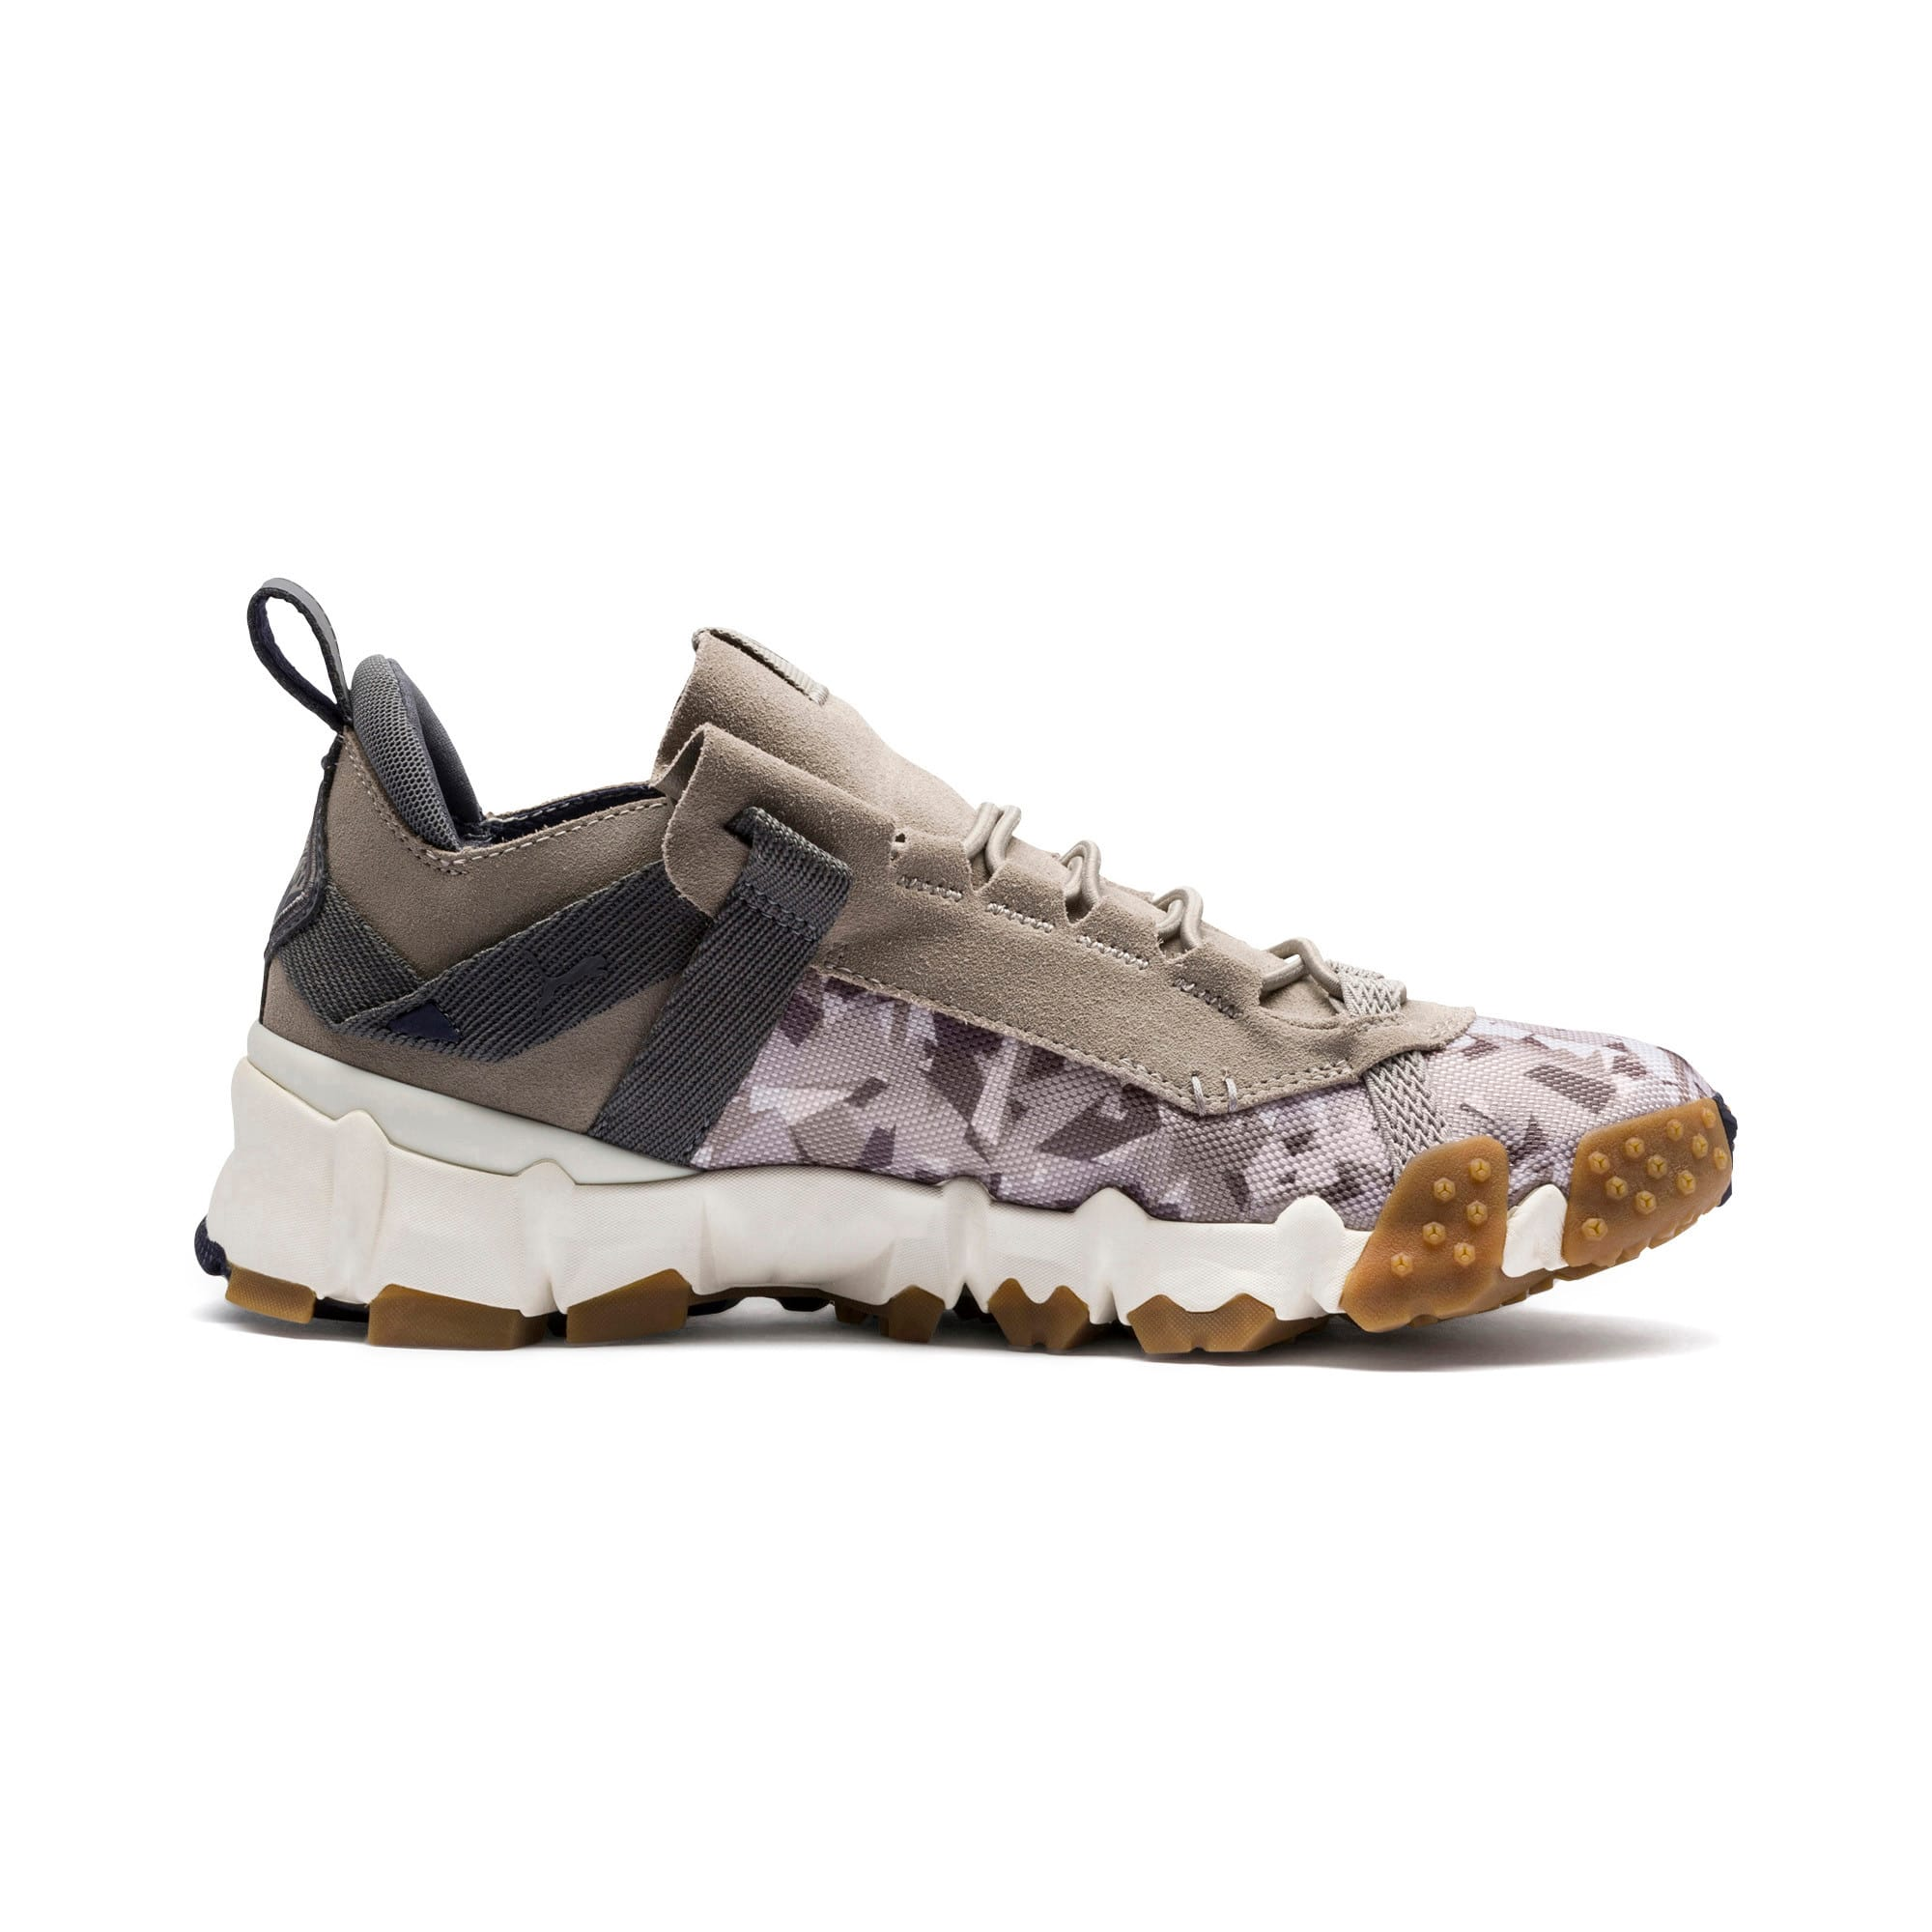 Thumbnail 5 of Trailfox Camo Trainers, Elephant Skin-Whisper White, medium-IND